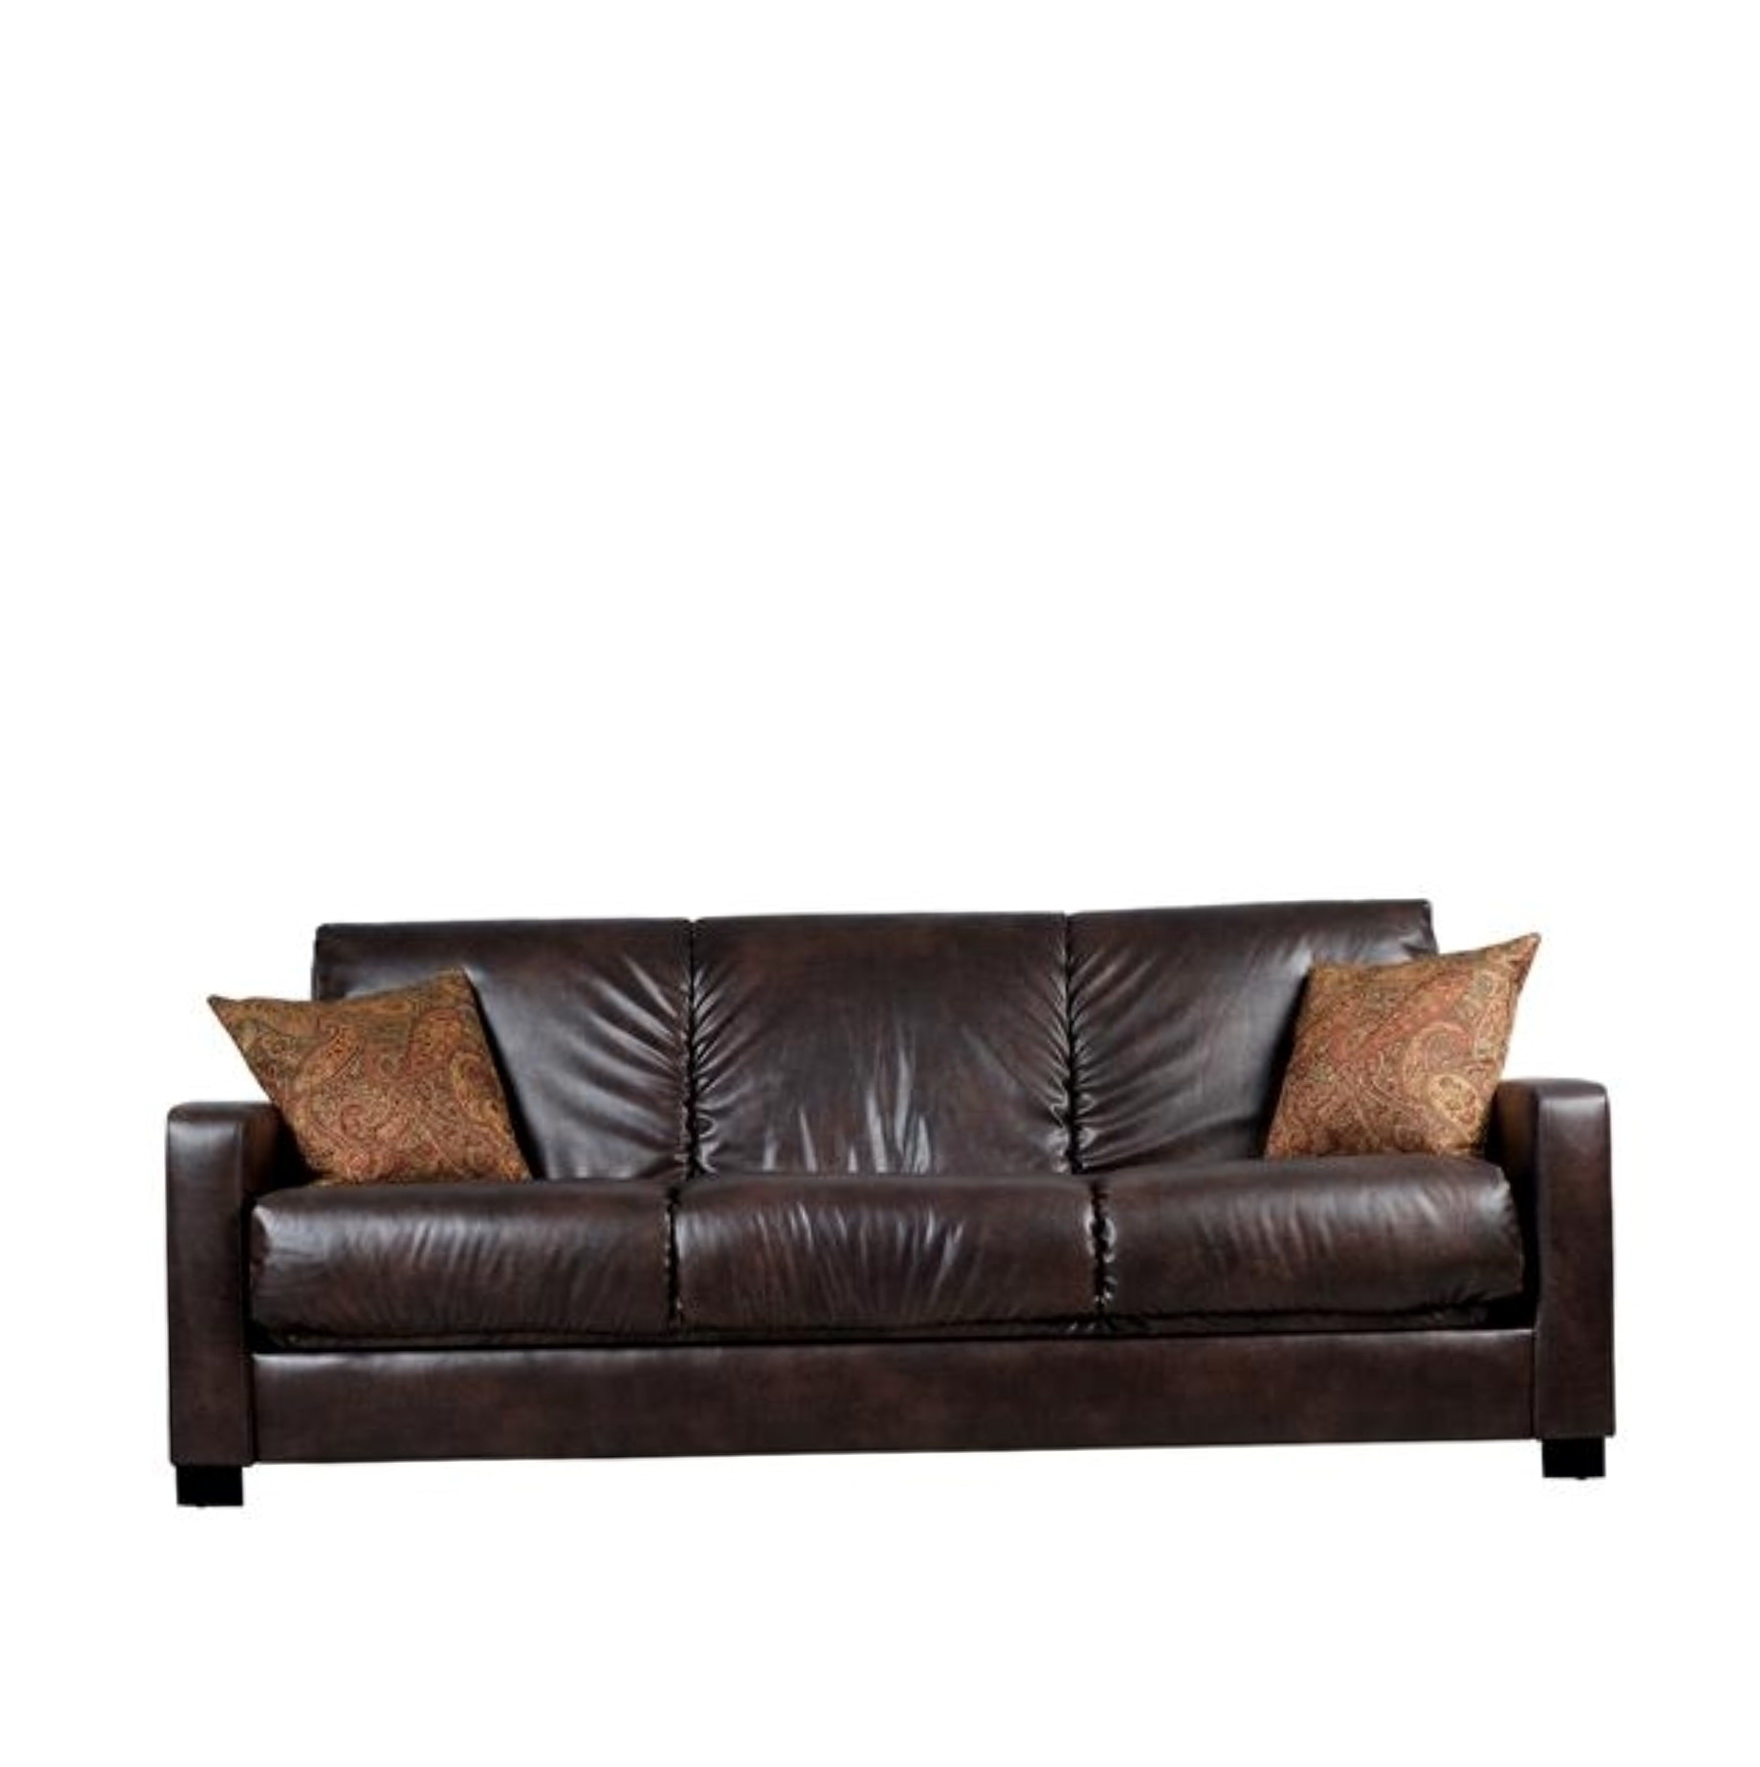 Cushions For Brown Leather Sofas Brown Leather Sofa Cushions Home Design Ideas